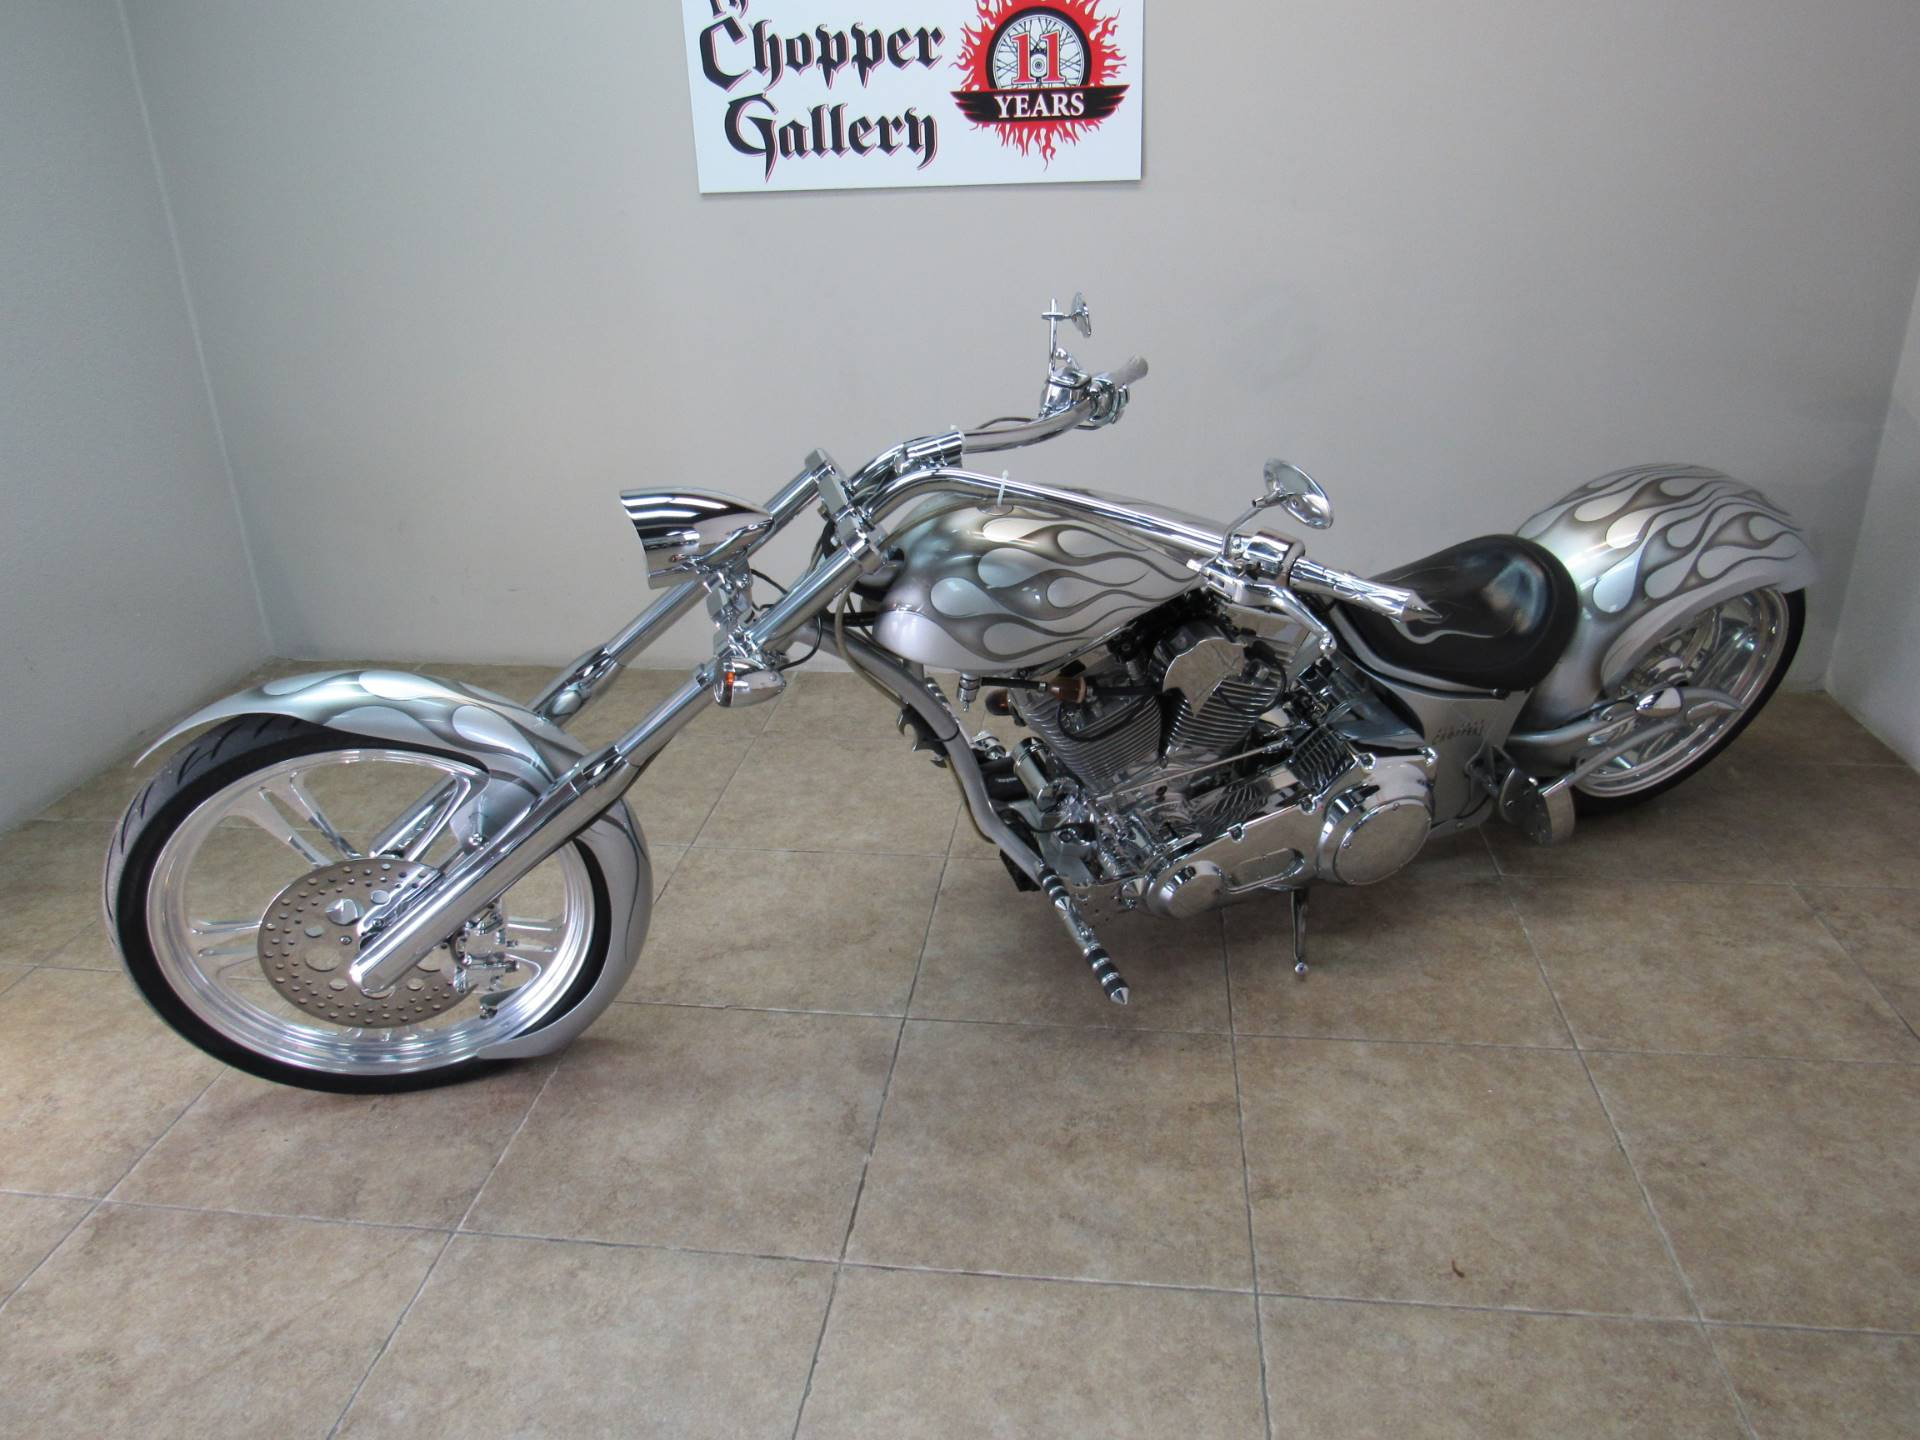 2006 Big Bear Choppers Sled Prostreet (CA) - [SLEDPROSTREET] - Silver in Temecula, California - Photo 16